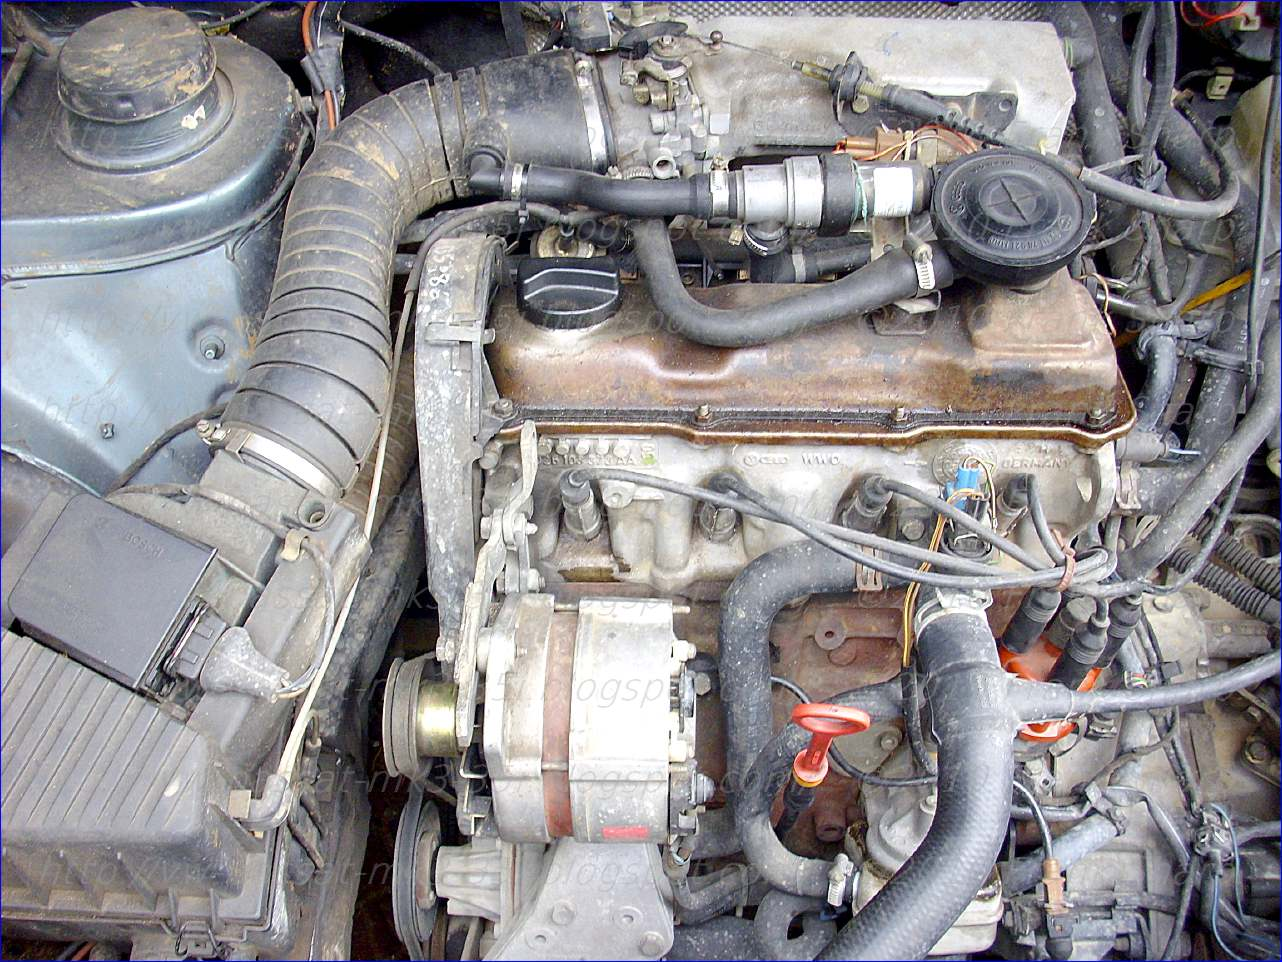 Vw Golf Mk3 Engine Diagram Wiring Will Be A Thing 2004 Passat Volkswagen Control Management Rh 35i Blogspot Com Jetta 20 Hose